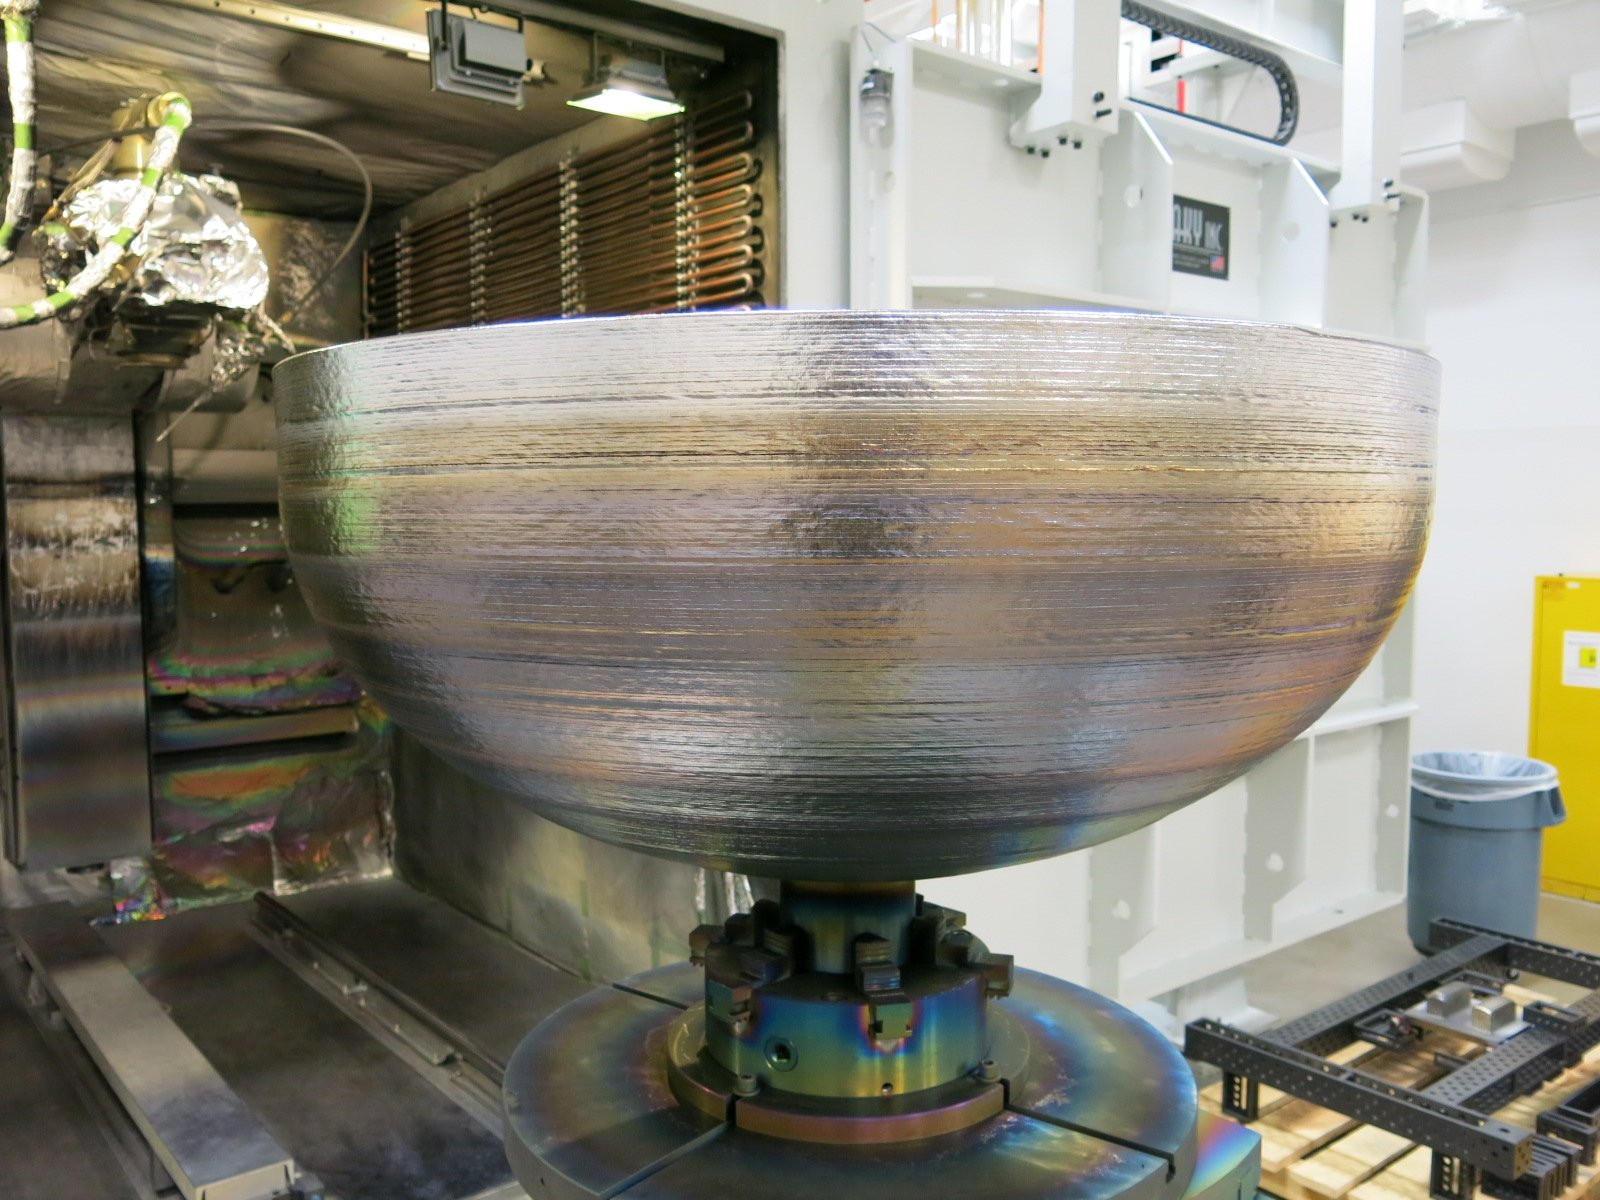 Lockheed Martin Is 3D-Printing Giant Titanium Space Parts https://t.co/mrKHqkFzWA https://t.co/bi8Xrdllo2